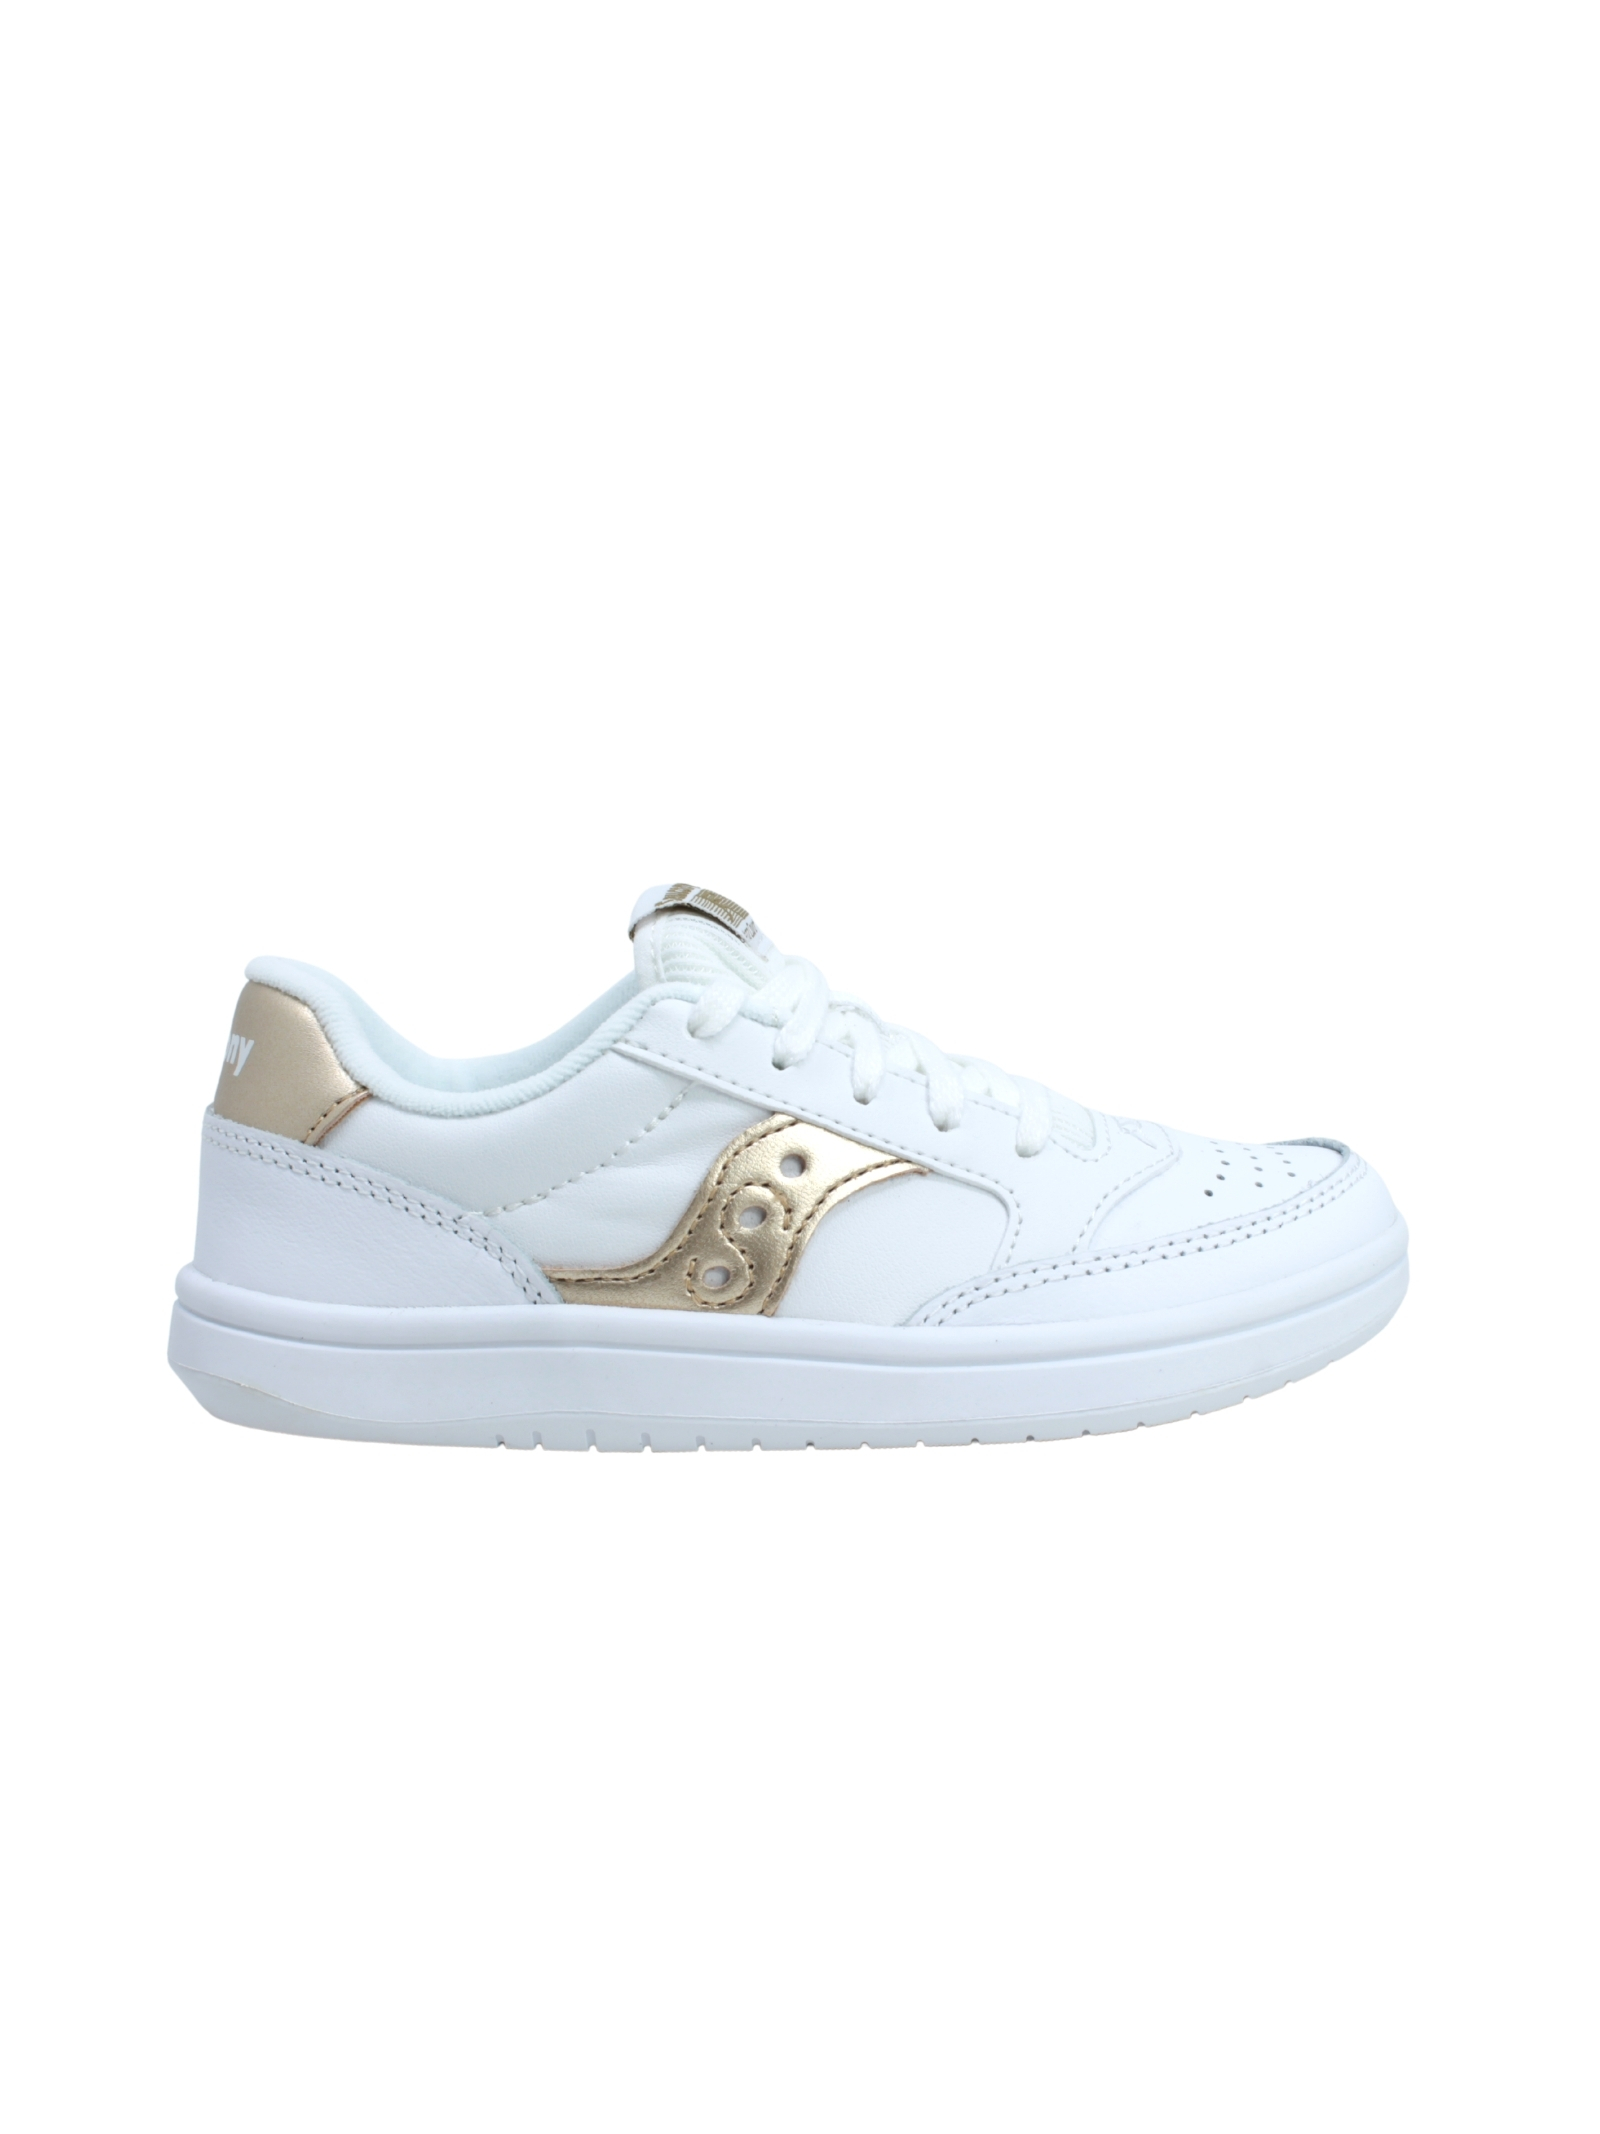 Sneakers Bambina Jazz Court SAUCONY KIDS | Sneakers | SK164399WHITE/GOLD